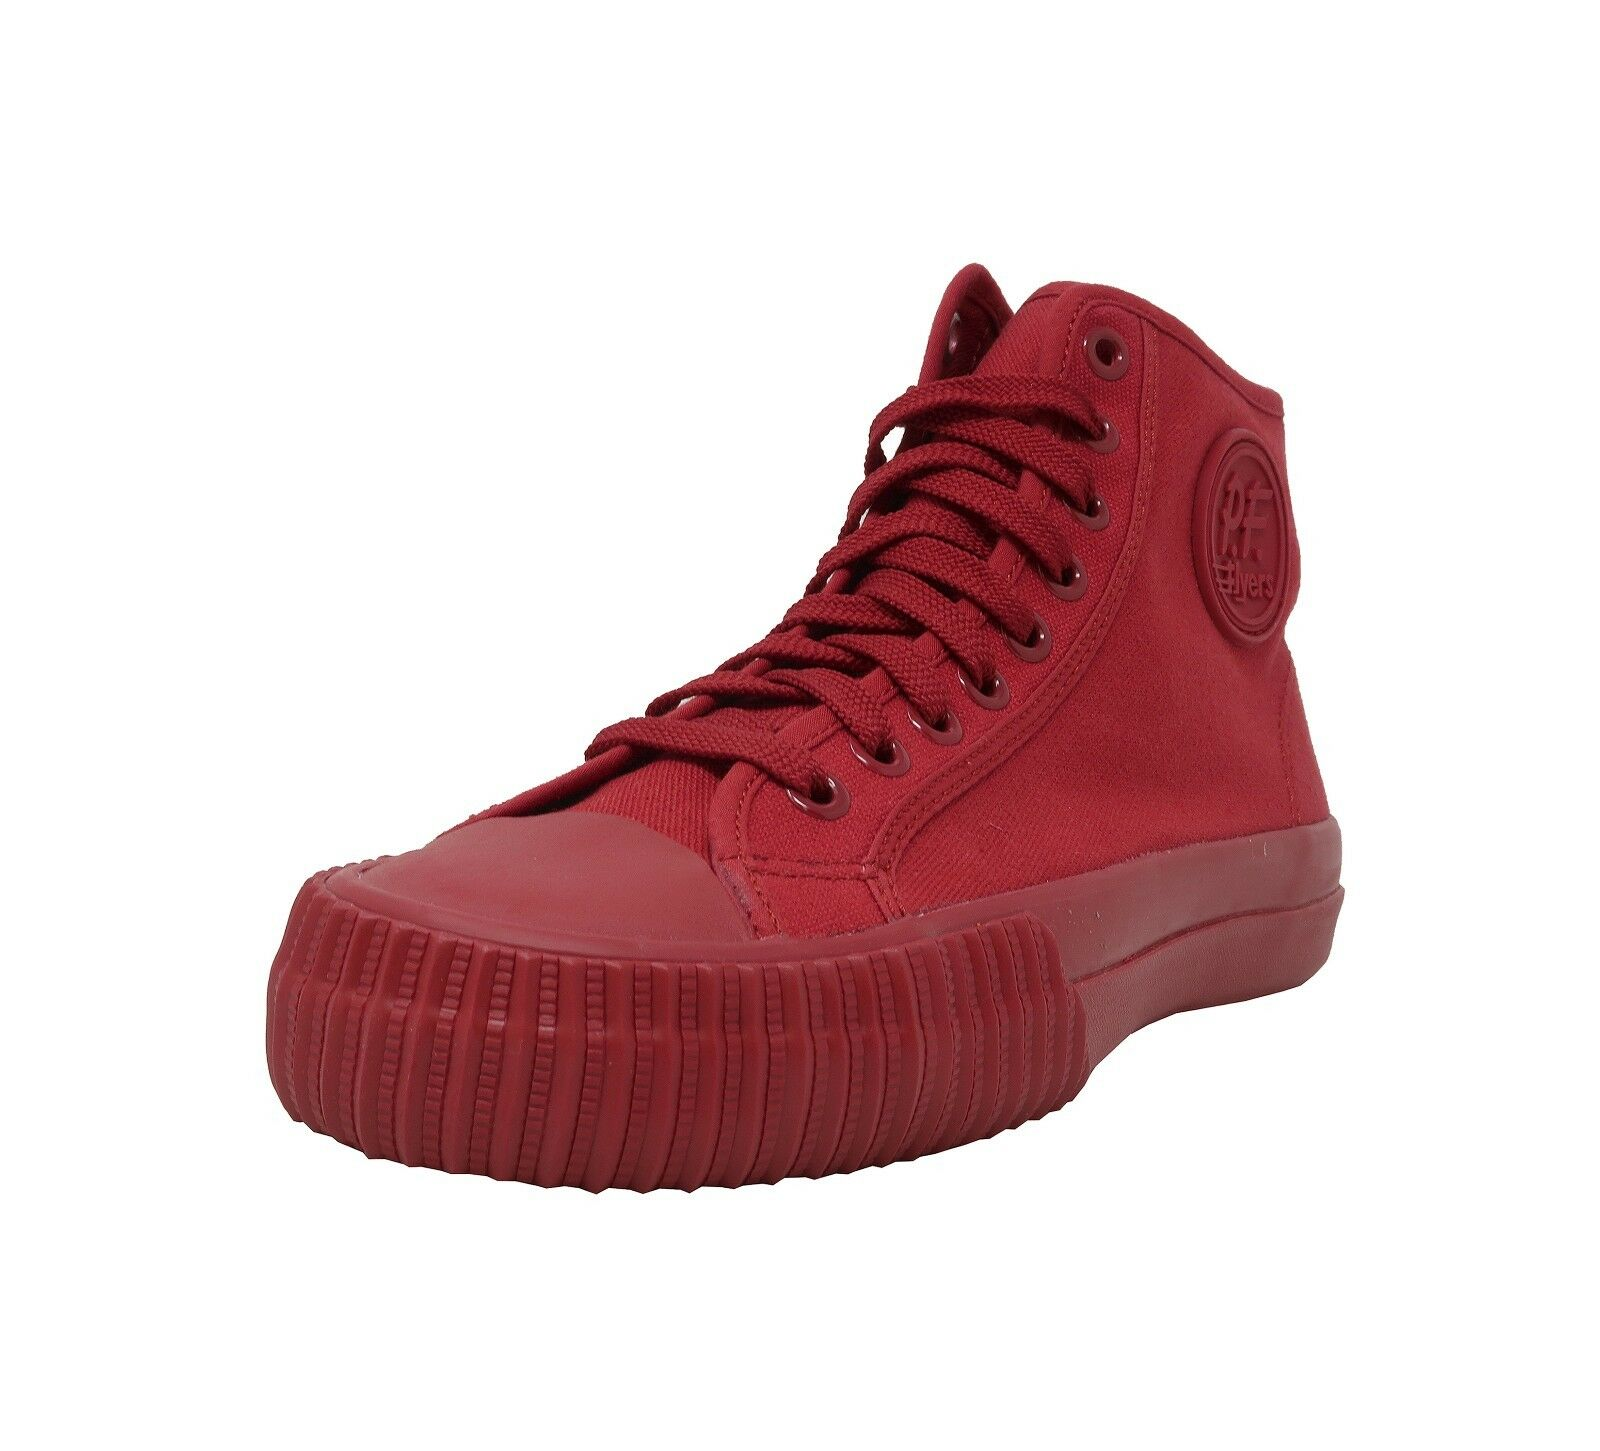 PF Envy Flyers Schuhe Center Hi Envy PF PM16OH3G - ROT e7816e